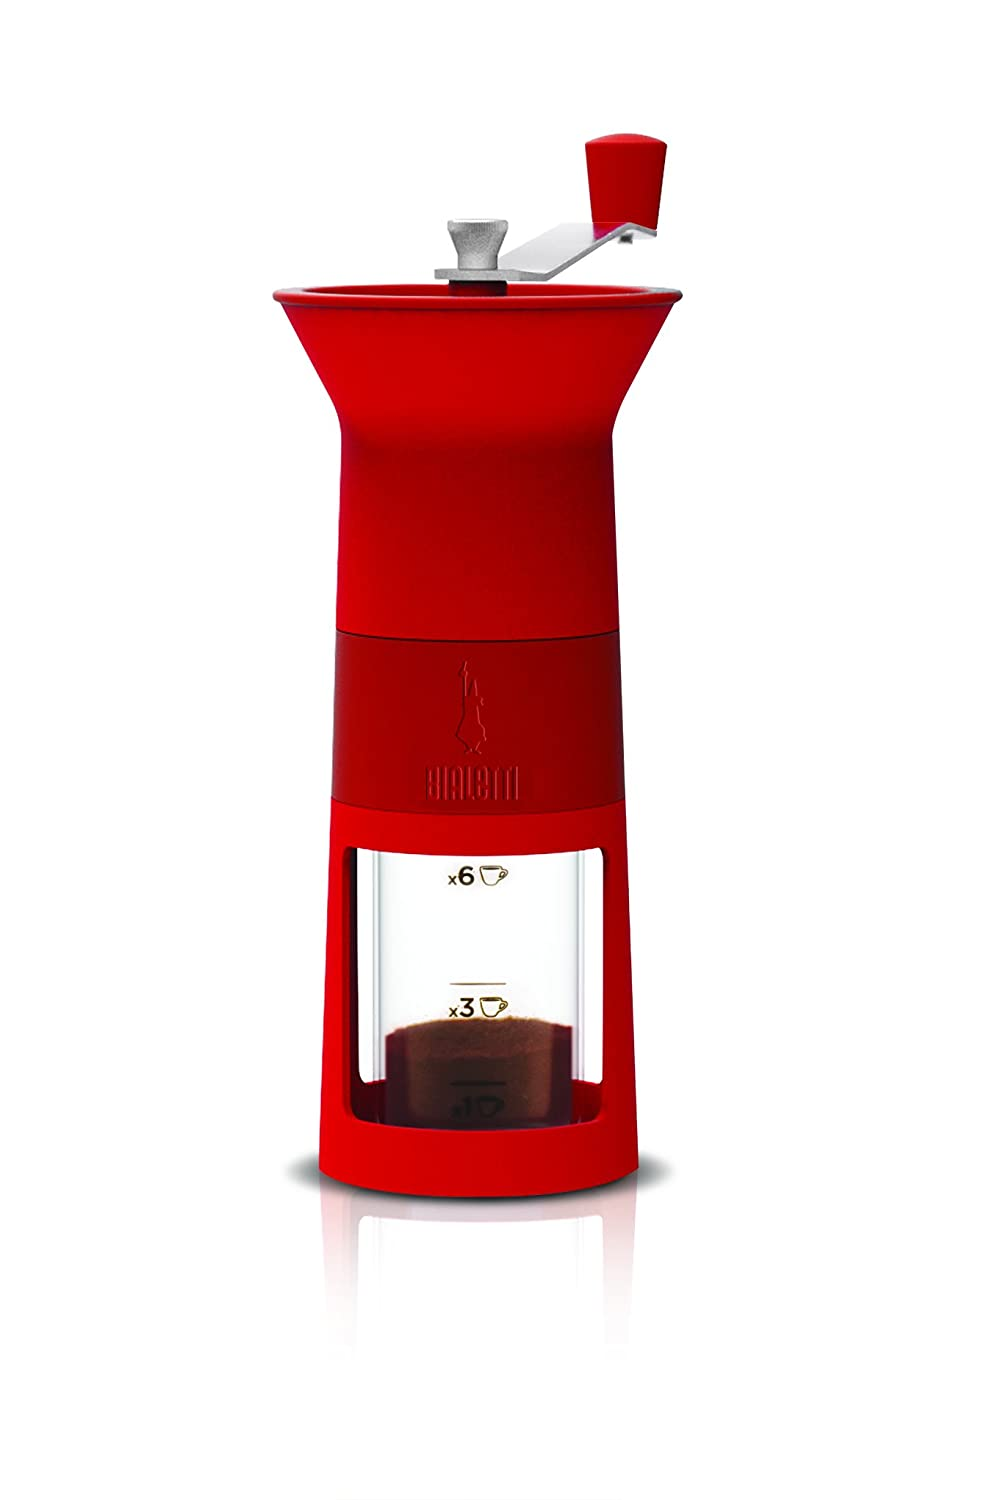 Bialetti - Manual Coffee Grinder - Red DCDESIGN02